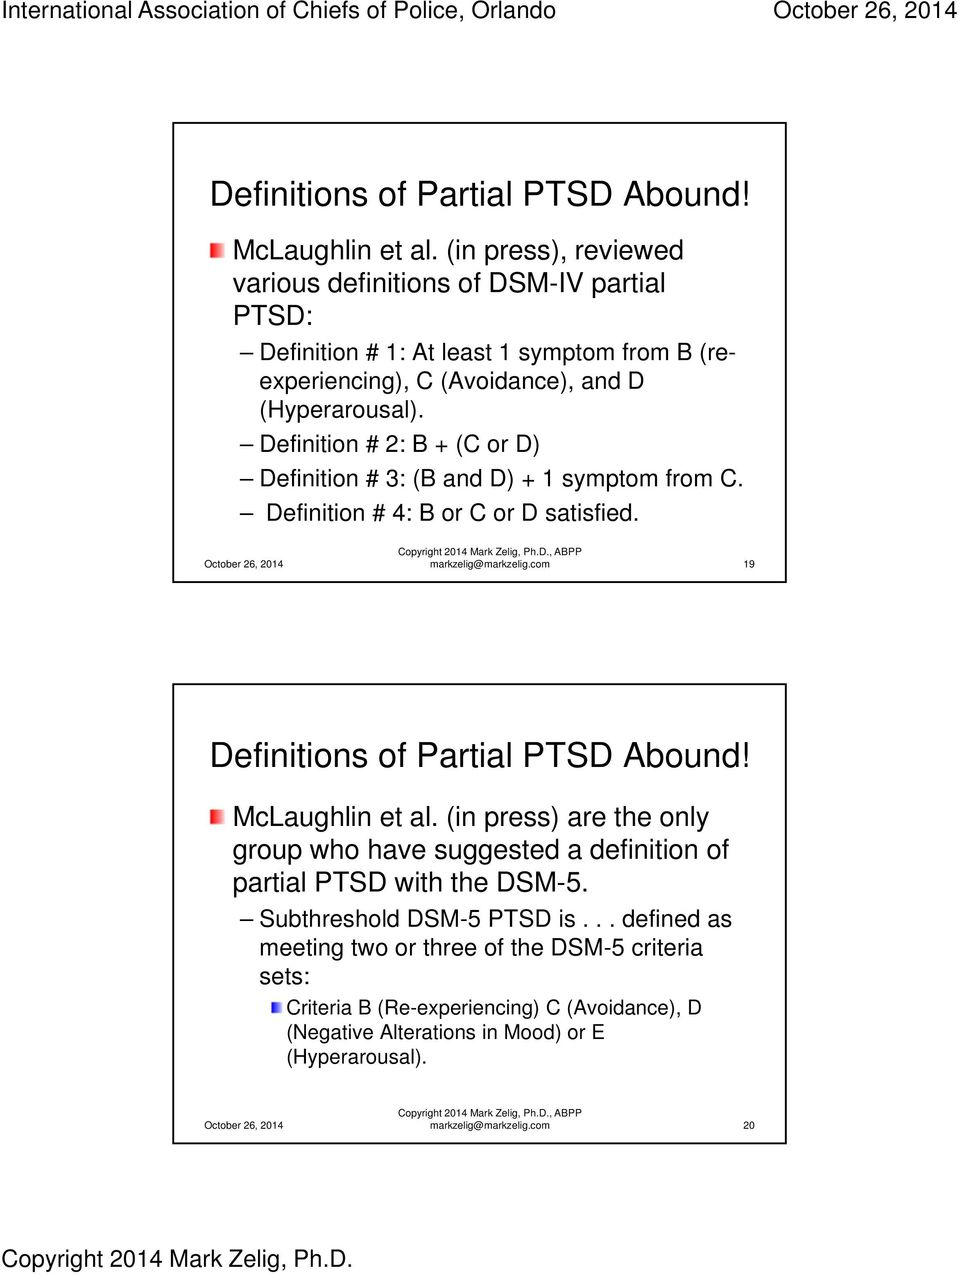 Definition # 2: B + (C or D) Definition # 3: (B and D) + 1 symptom from C. Definition # 4: B or C or D satisfied. markzelig@markzelig.com 19 Definitions of Partial PTSD Abound! McLaughlin et al.